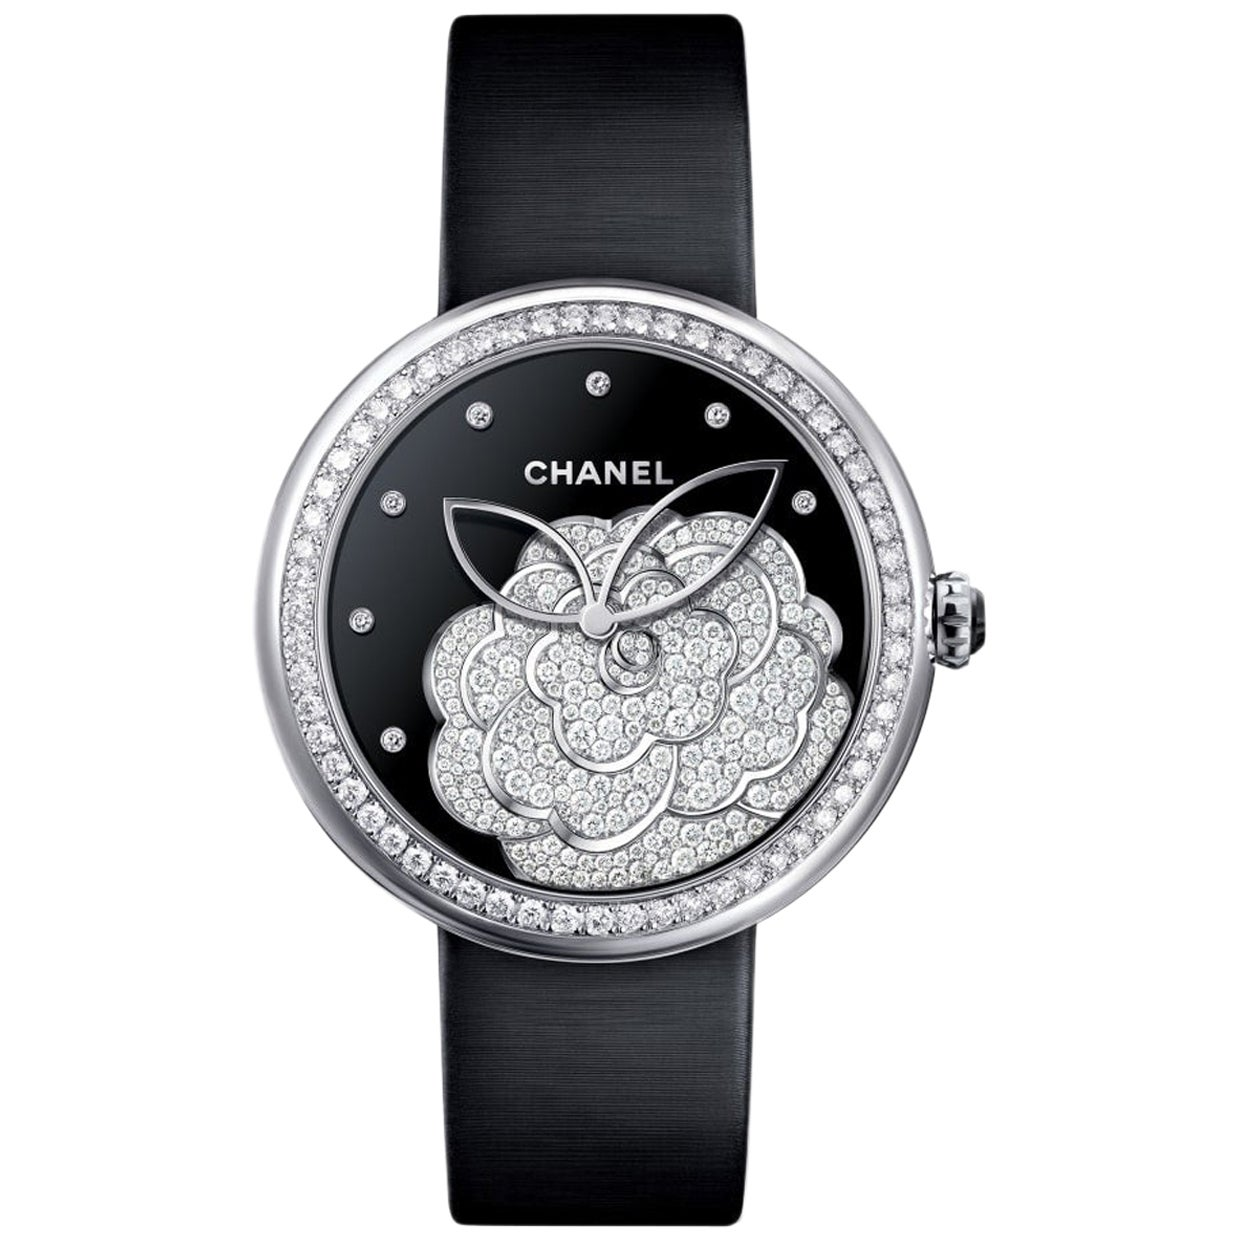 Chanel Mademoiselle Privé Watch, H4318